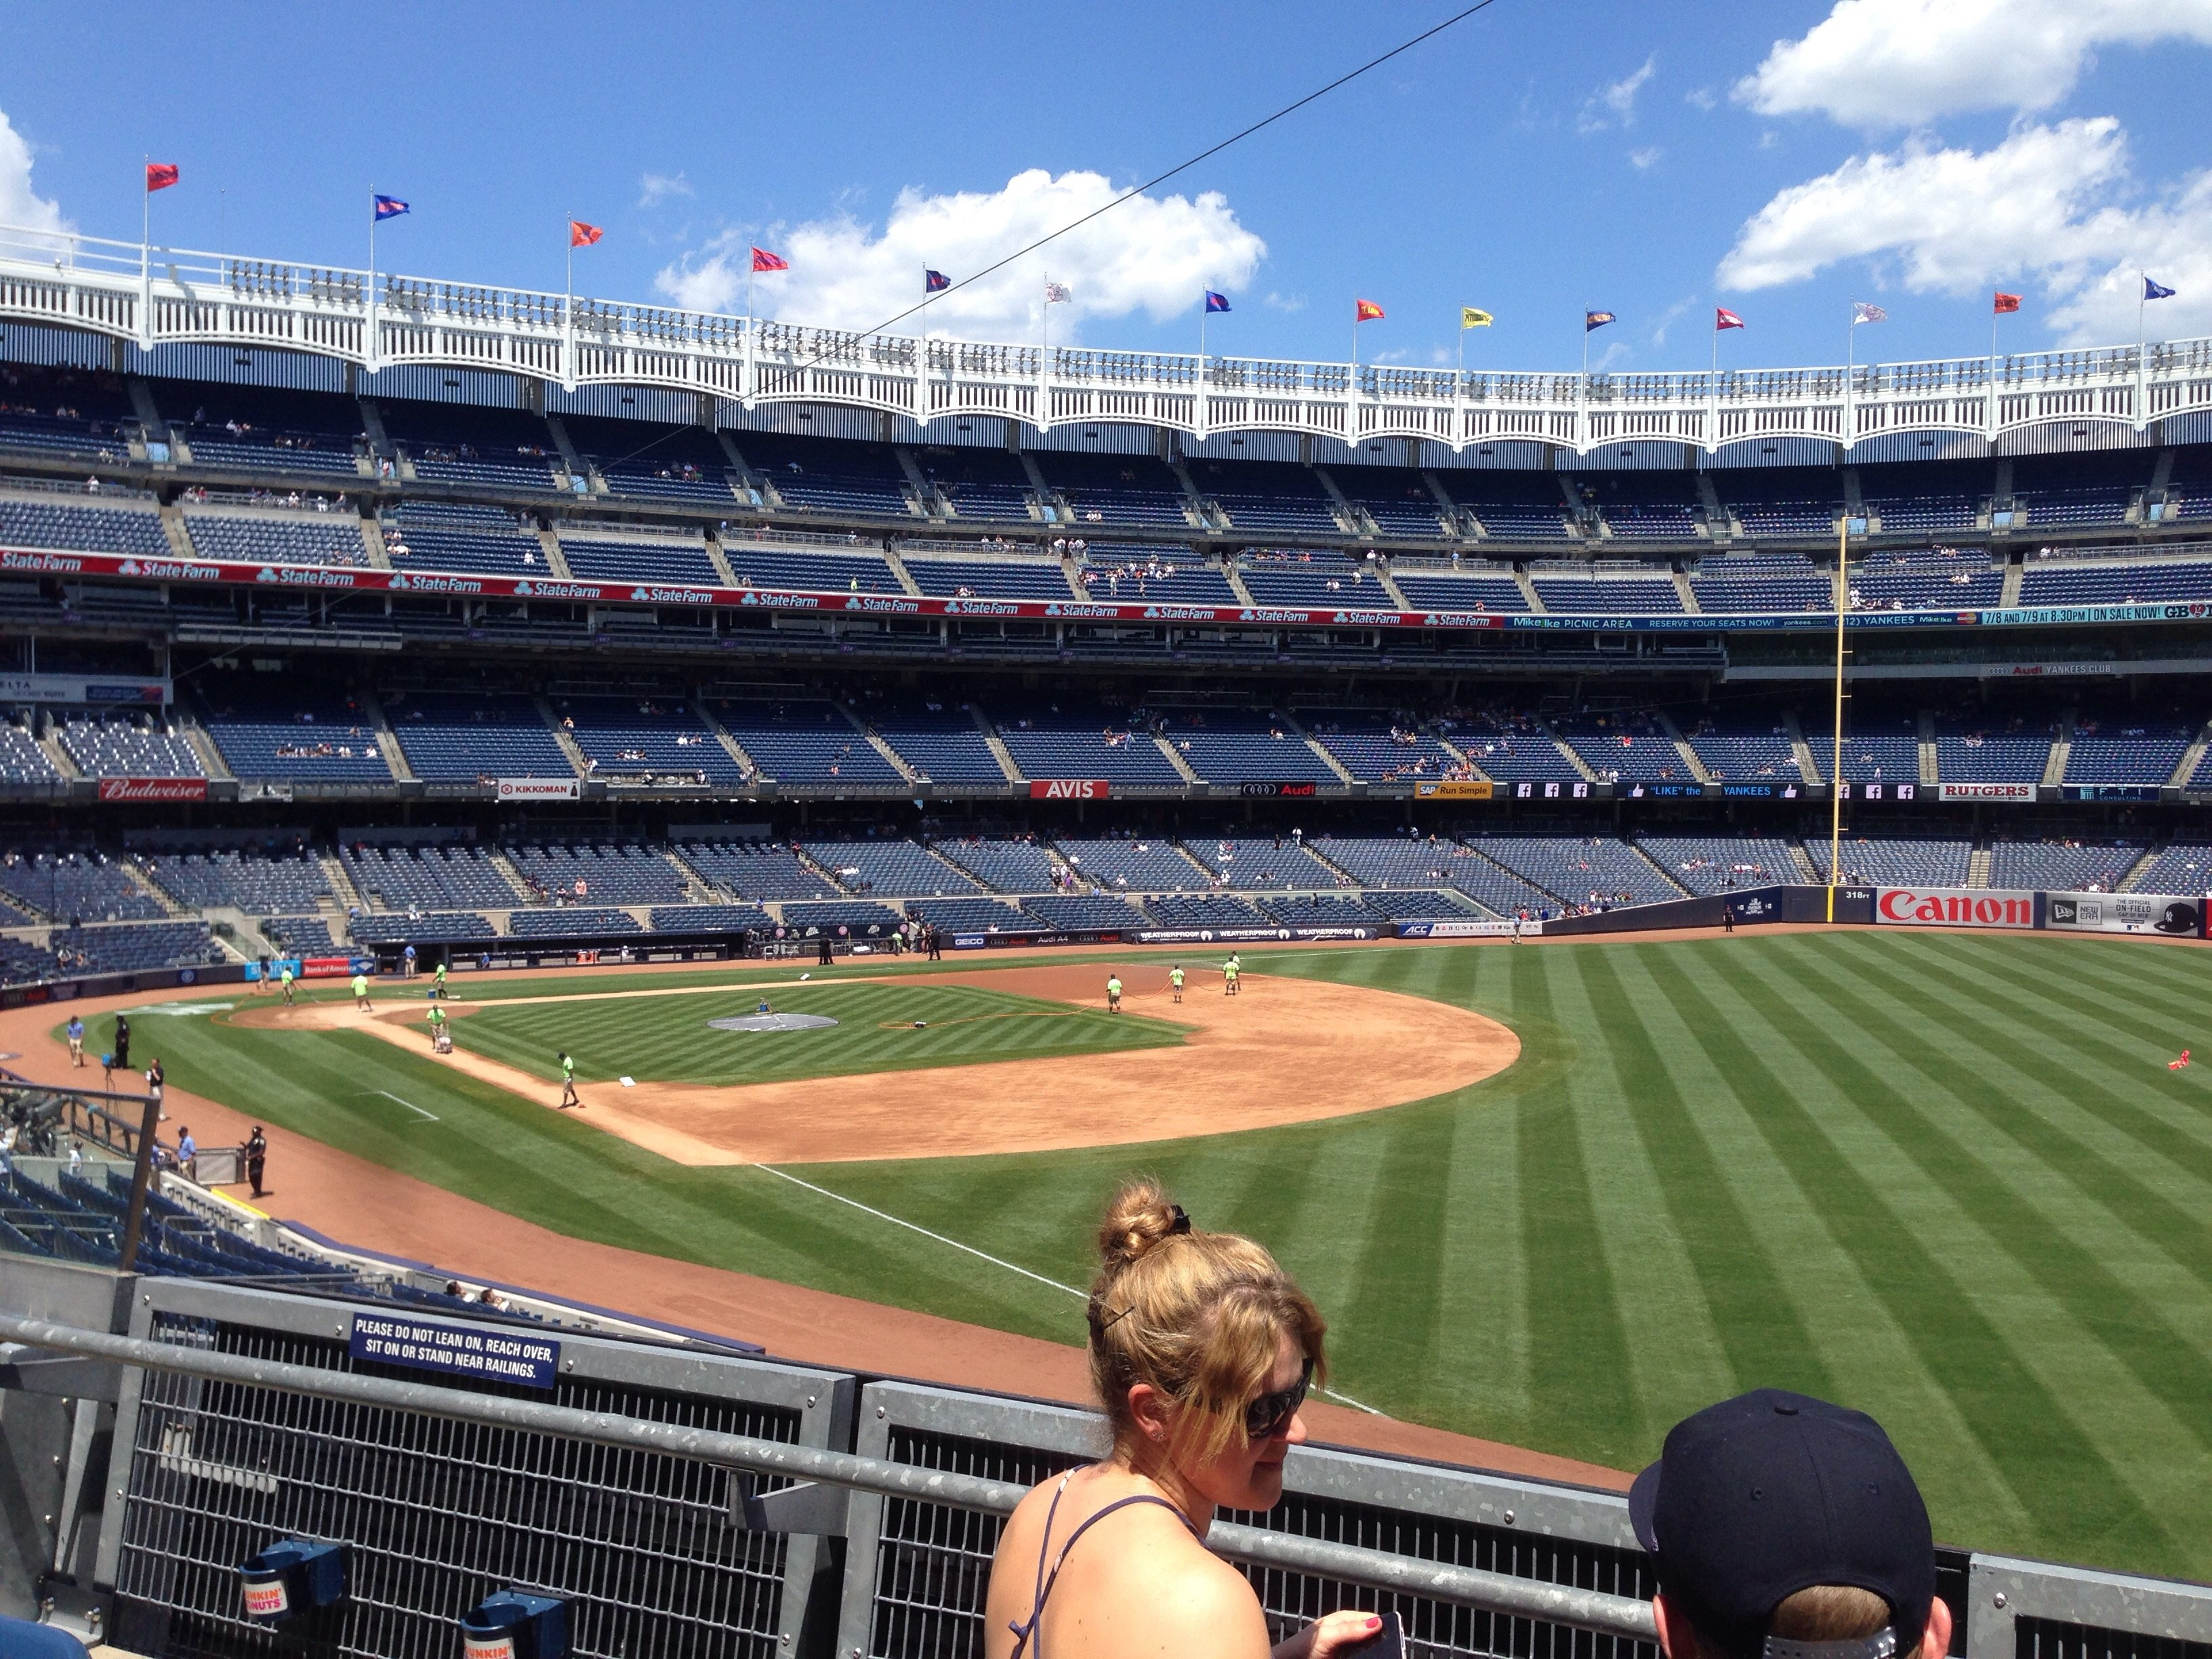 New York Yankees Seat View for Yankee Stadium Section 210, Row 3